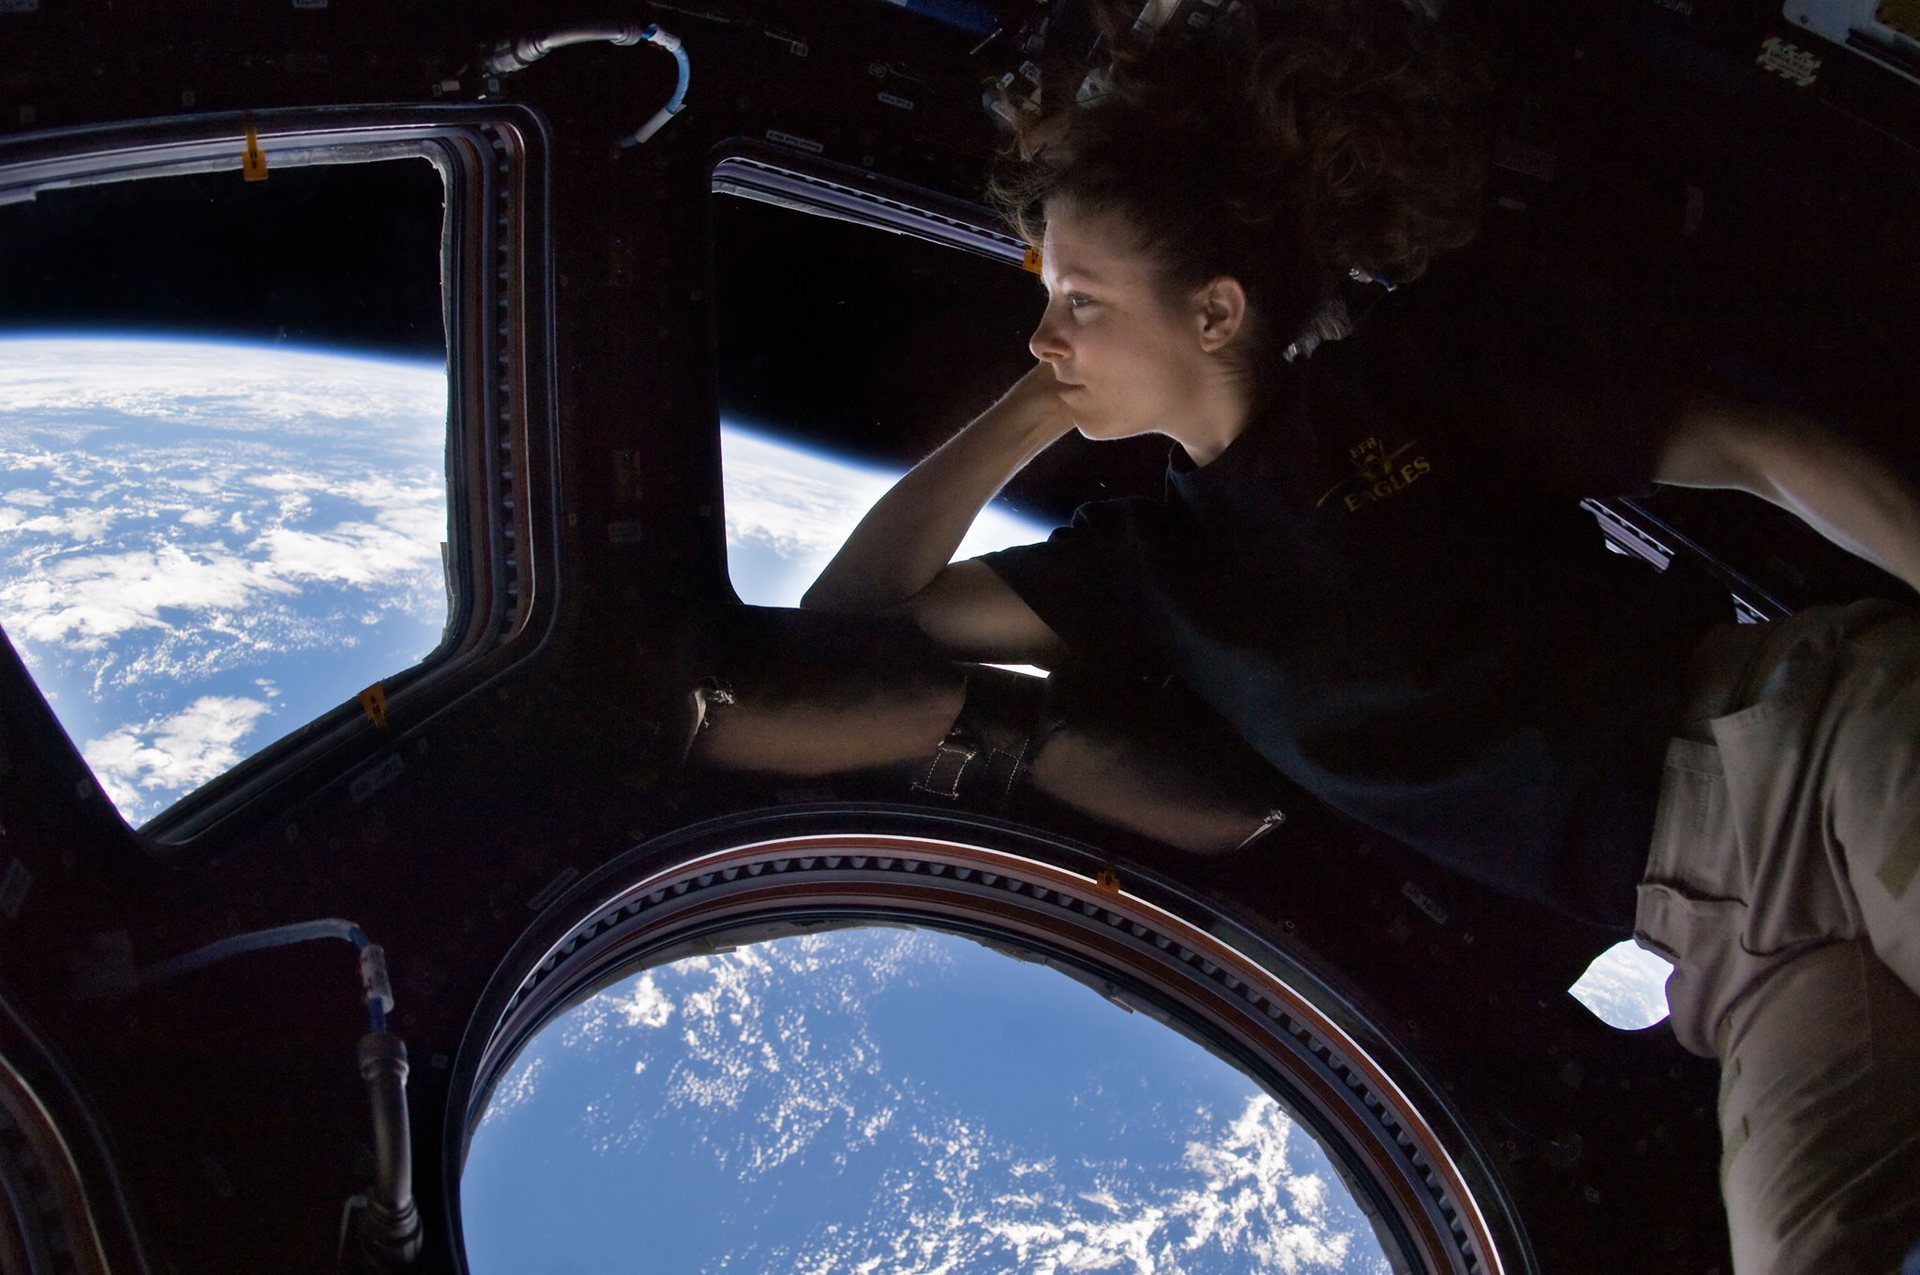 NASA astronaut Tracy Caldwell Dyson, an Expedition 24 flight engineer in 2010, took a moment during her space station mission to enjoy an unmatched view of home through a window in the Cupola of the International Space Station, the brilliant blue and white part of Earth glowing against the blackness of space. - Image Credits: NASA